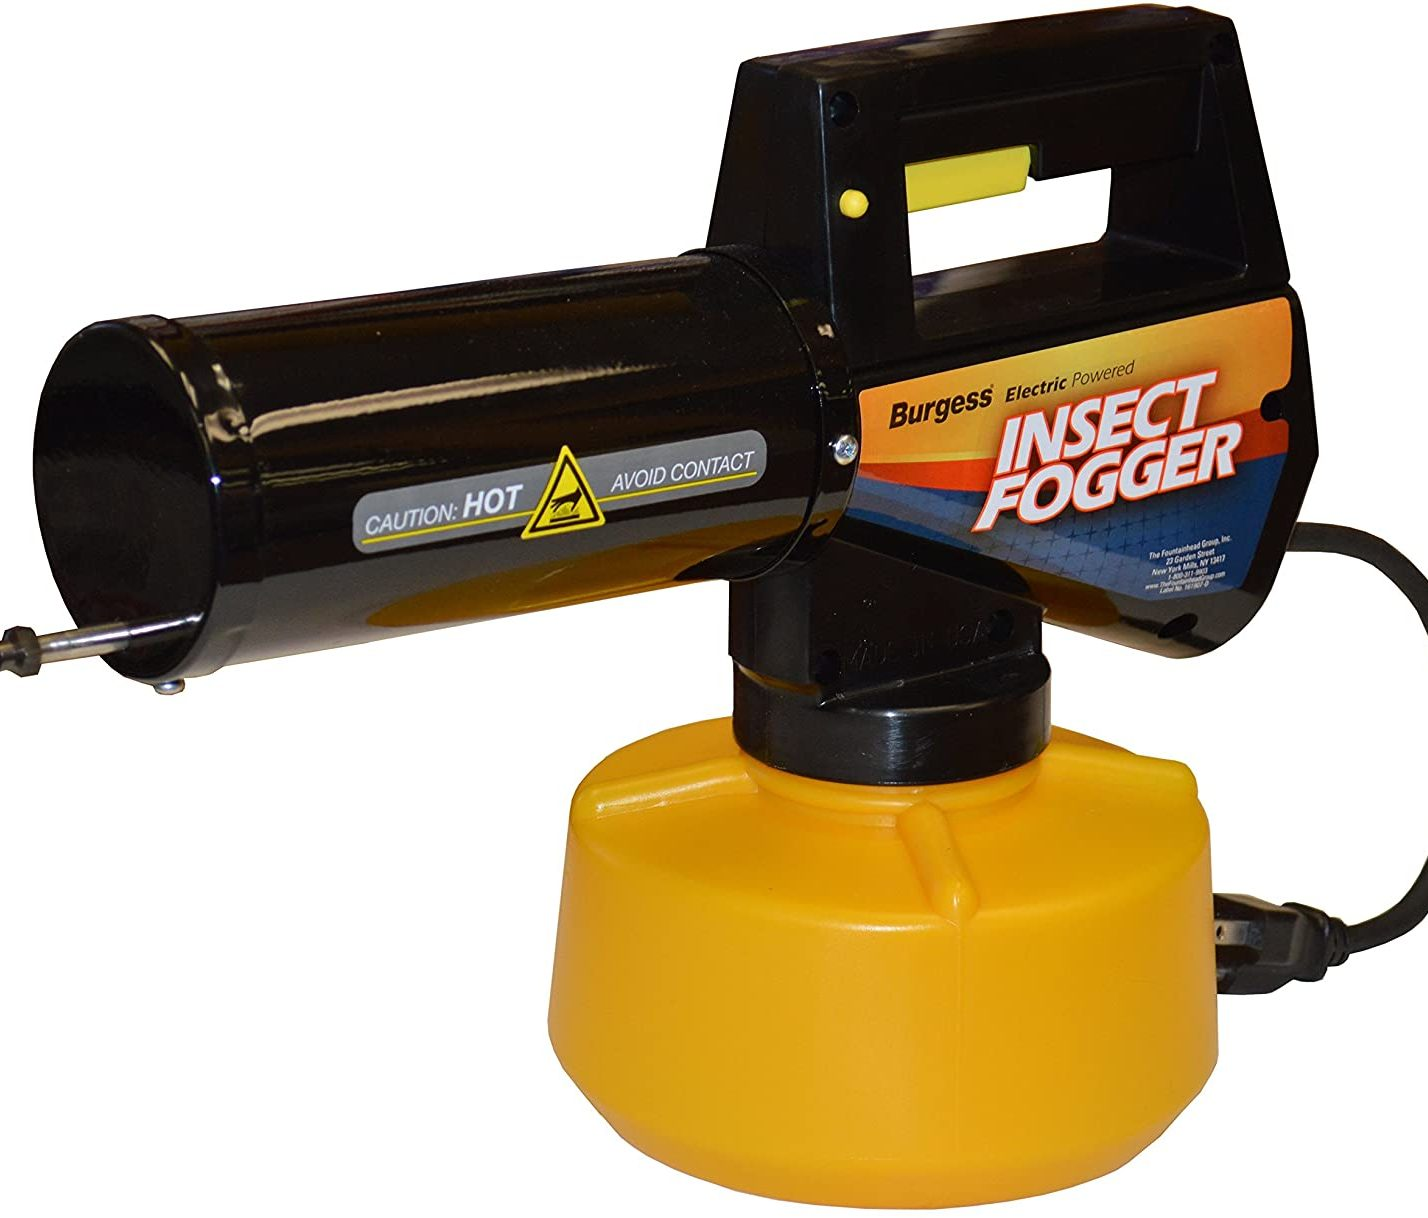 Burgess-960-Electric-Insect-Fogger